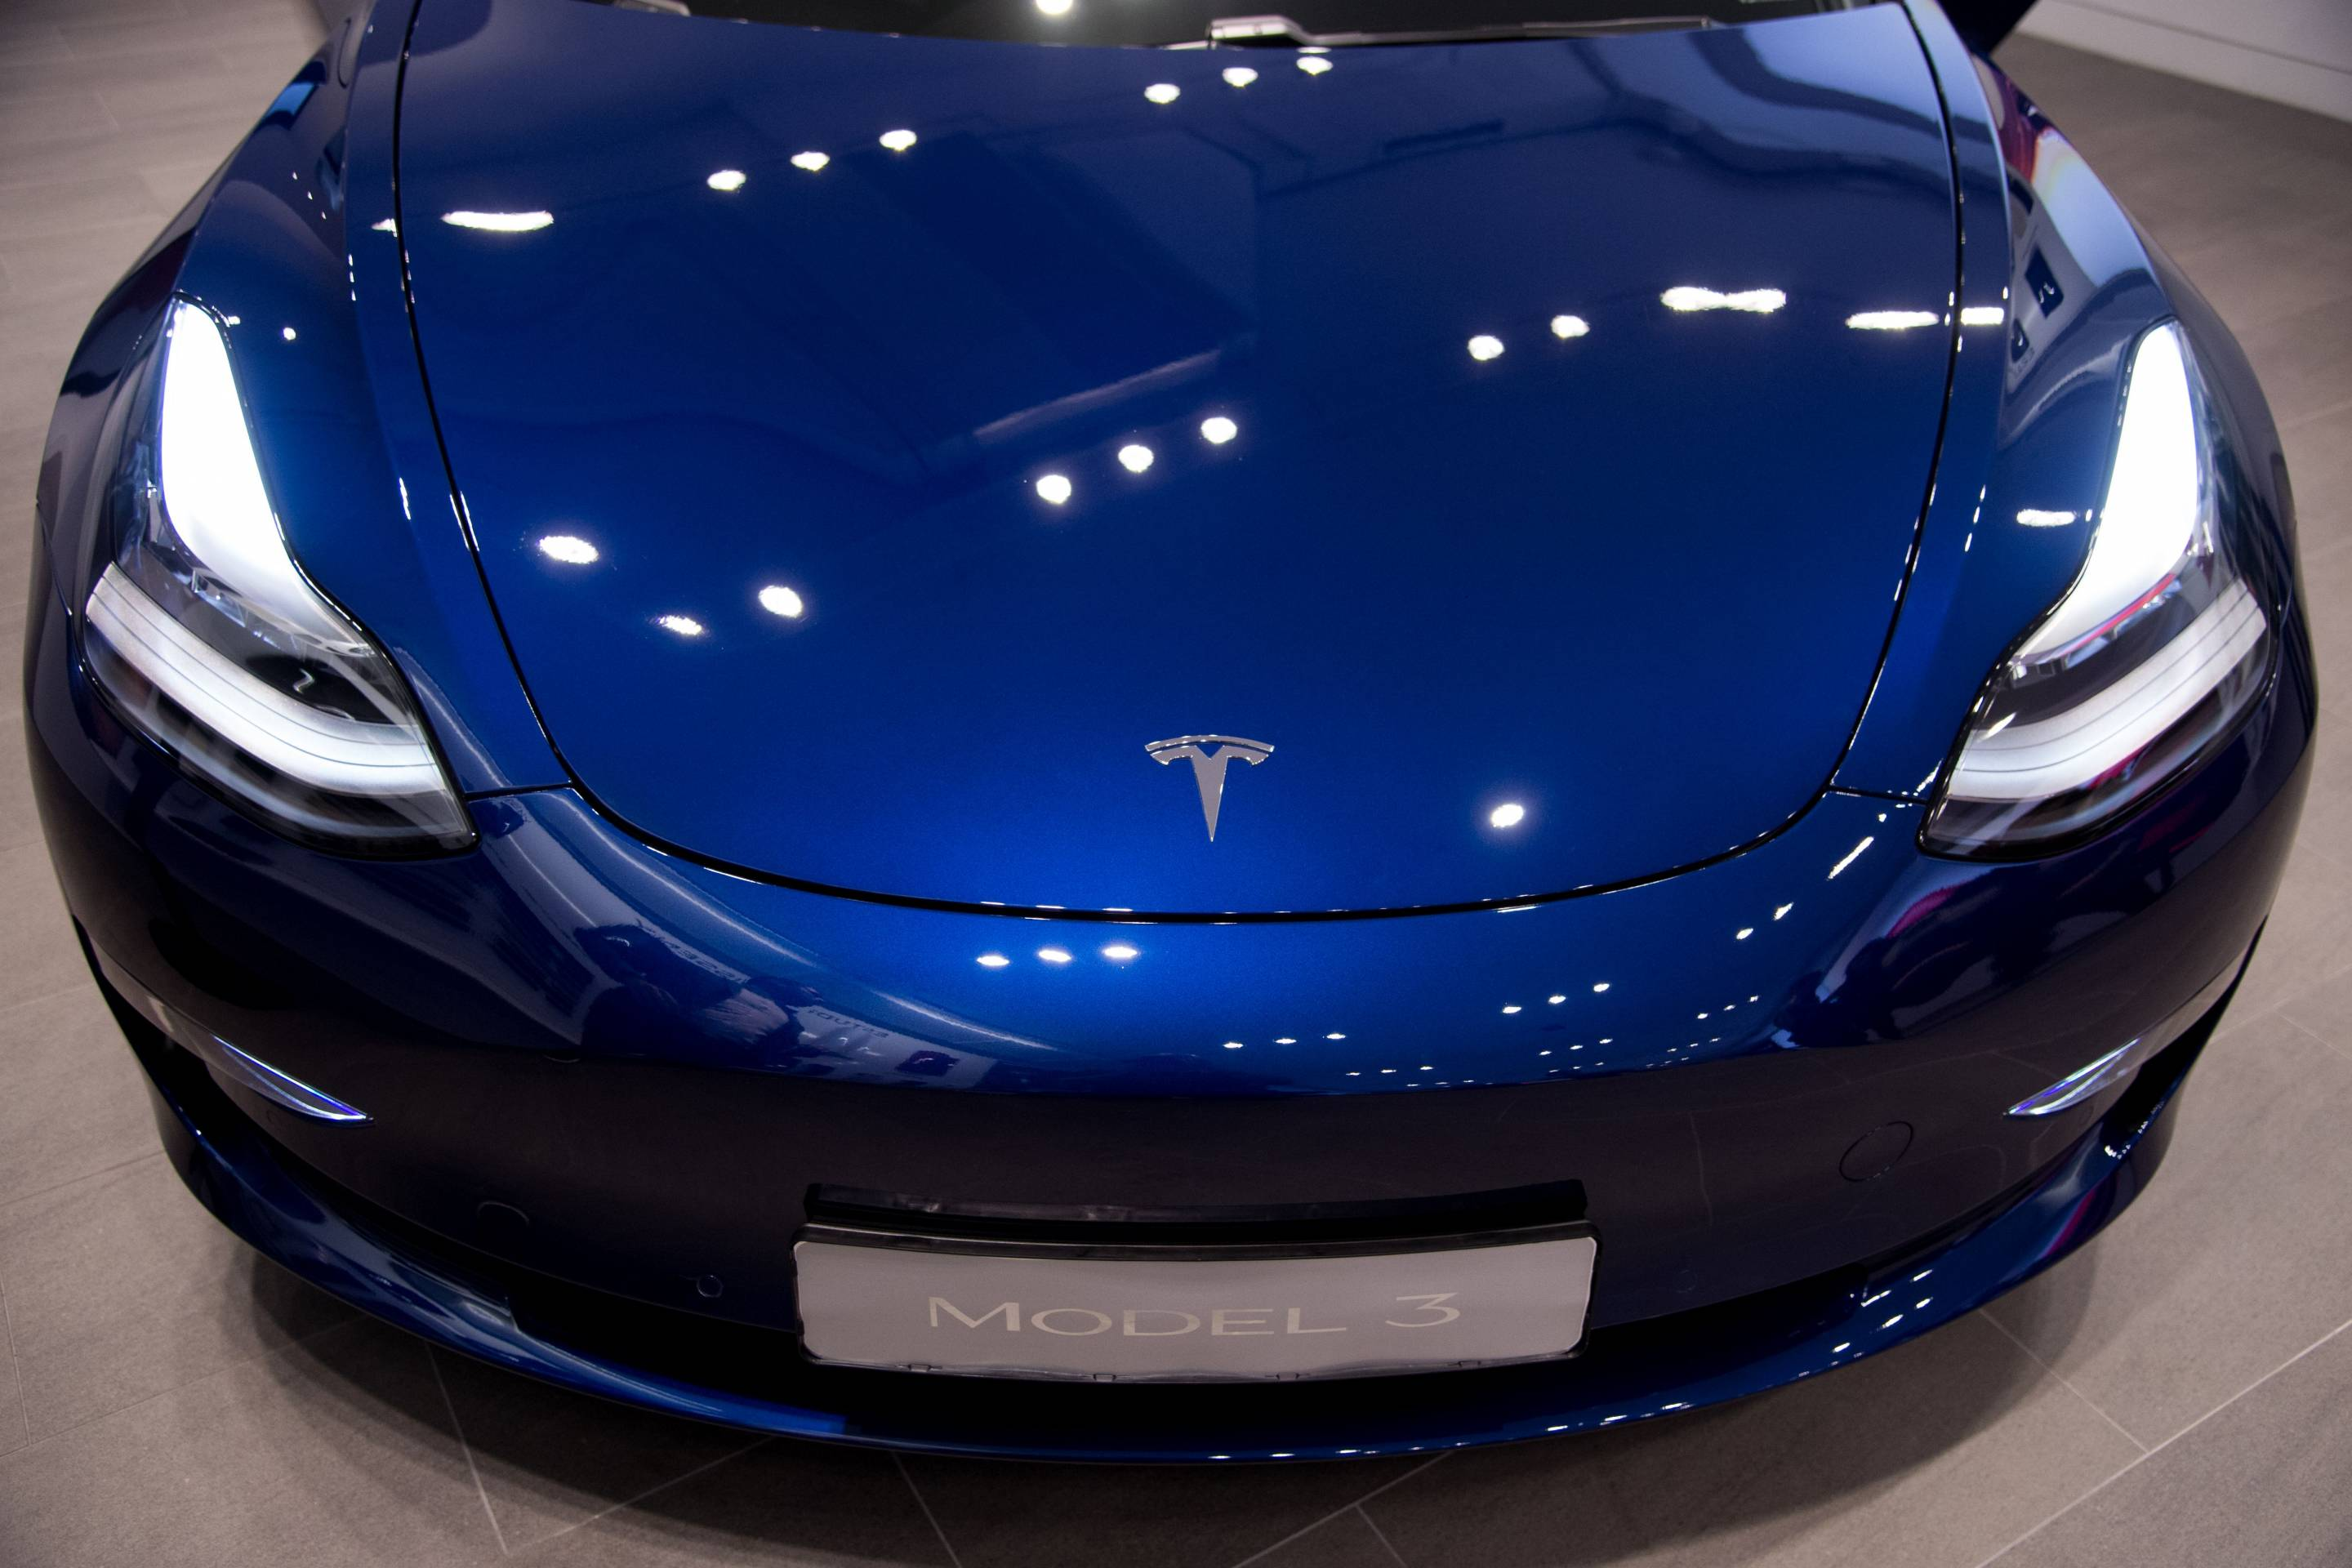 Tesla's Problems Add Up to a 'Code Red Situation' | Fortune